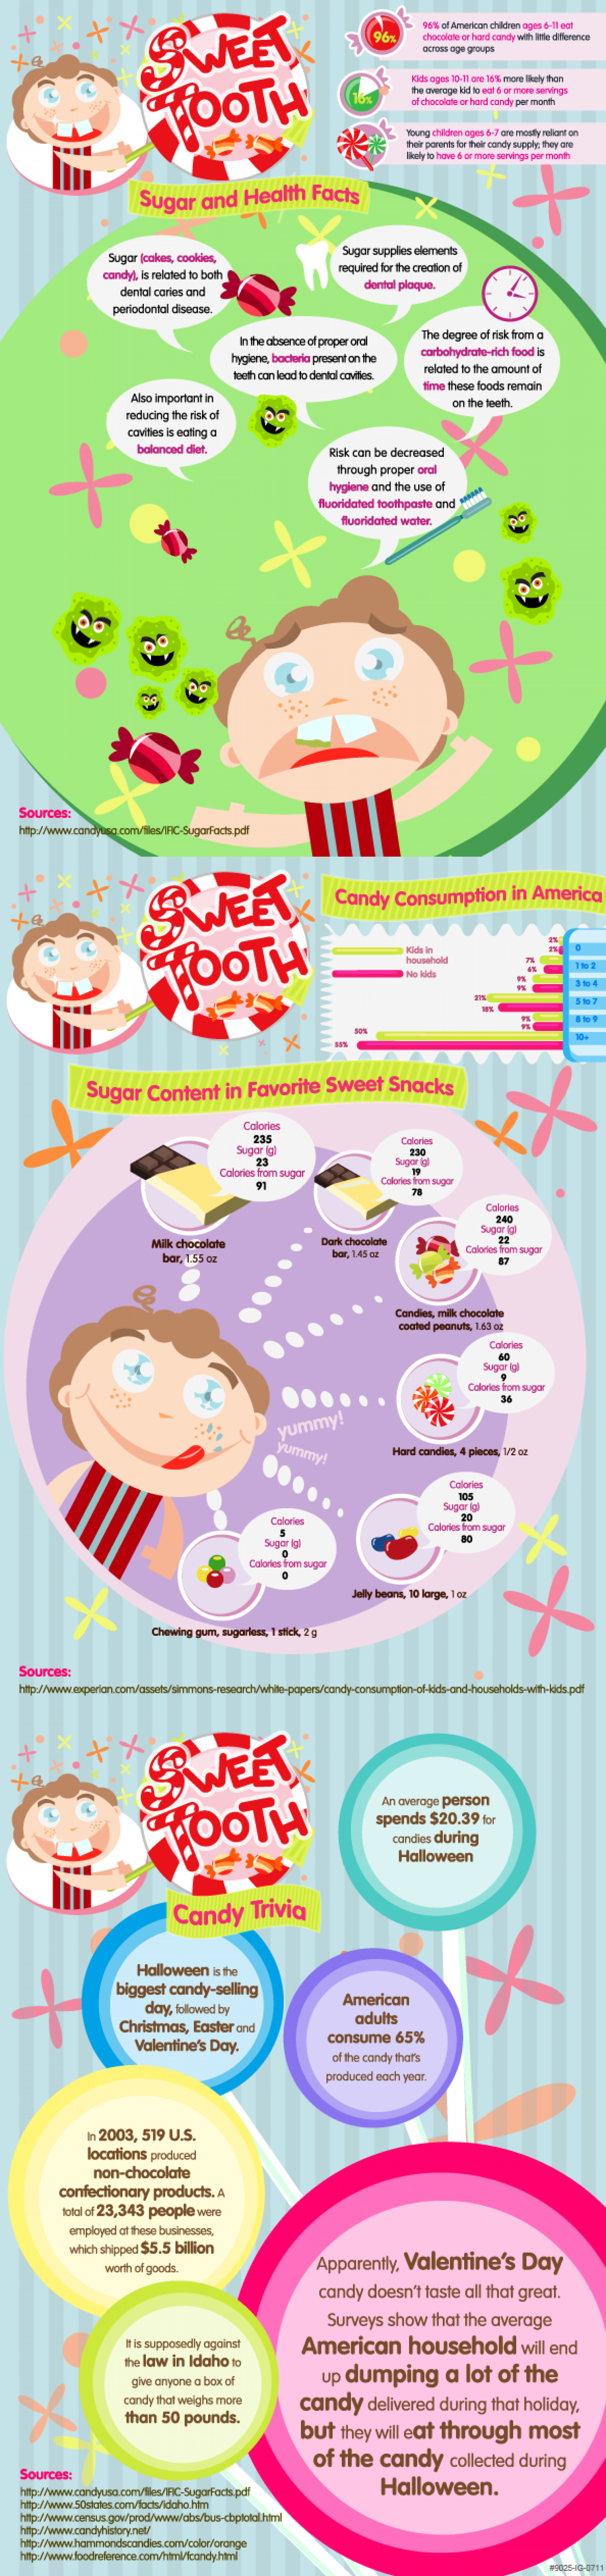 Sweet Tooth Sugar and Health Facts Infographic